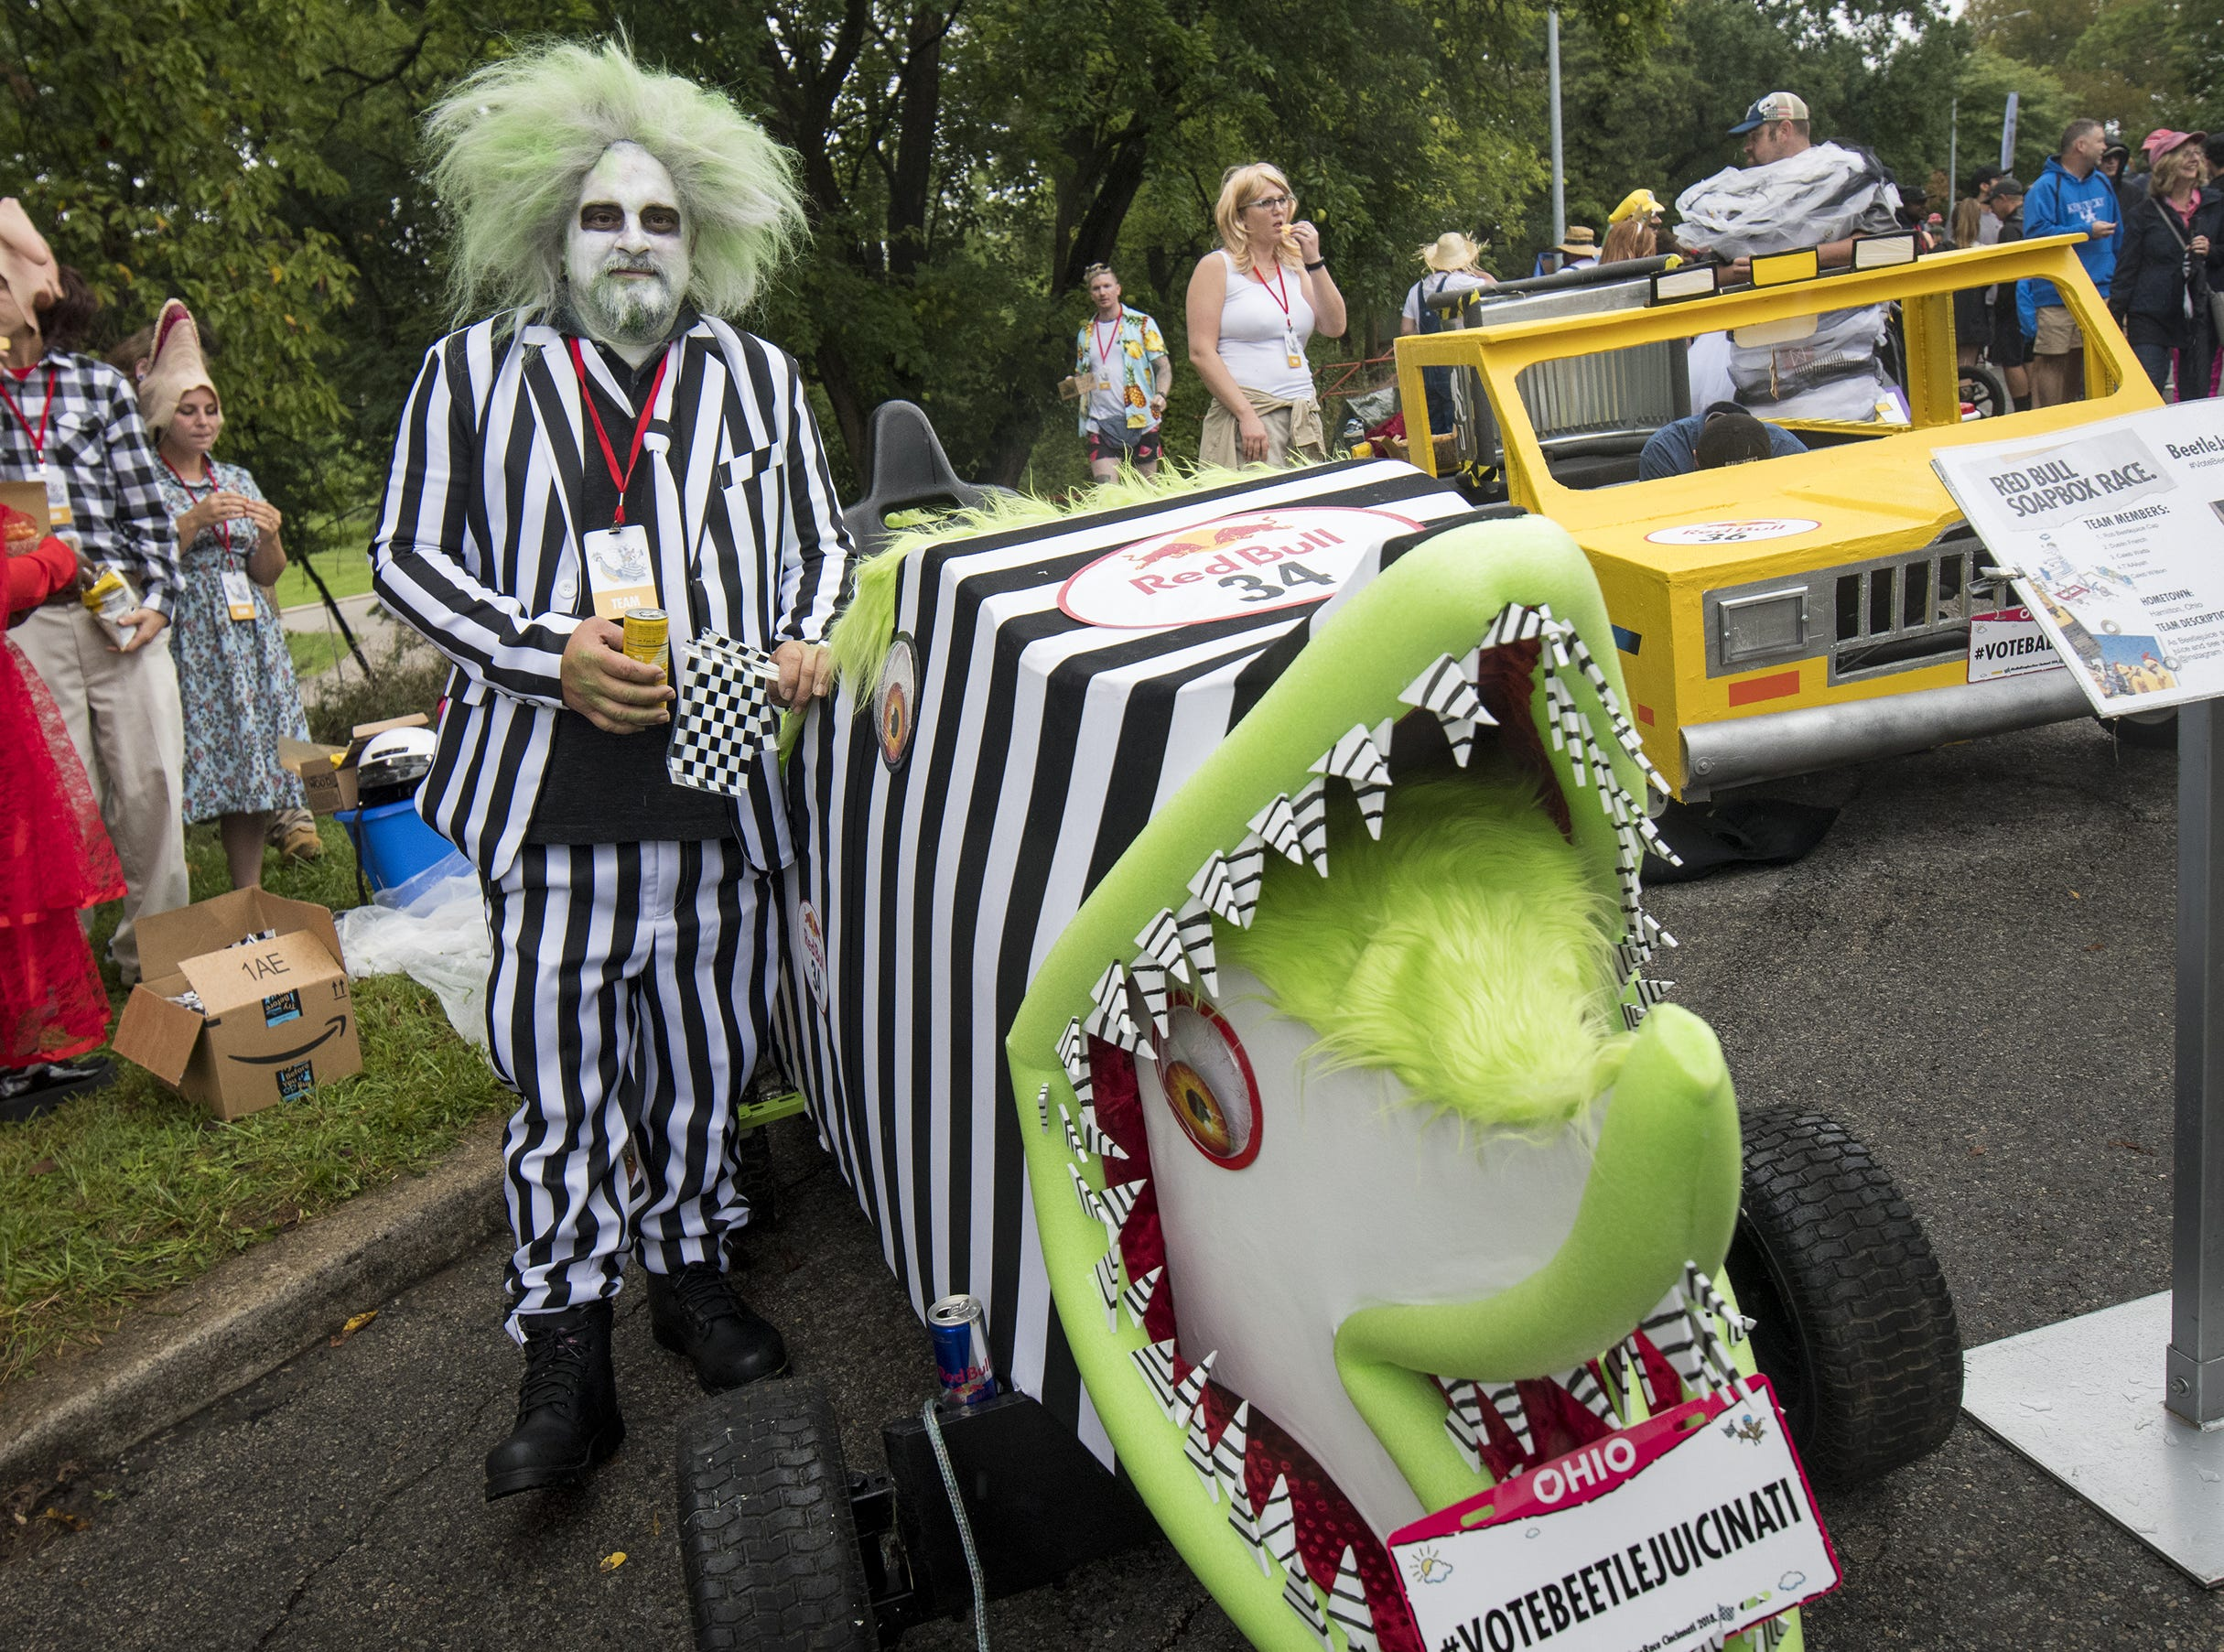 Rob Cap of Hamilton shows of team BeetleJuicinati's soapbox car before the Red Bull Soapbox Derby Saturday, September 8, 2018 in Cincinnati, Ohio.